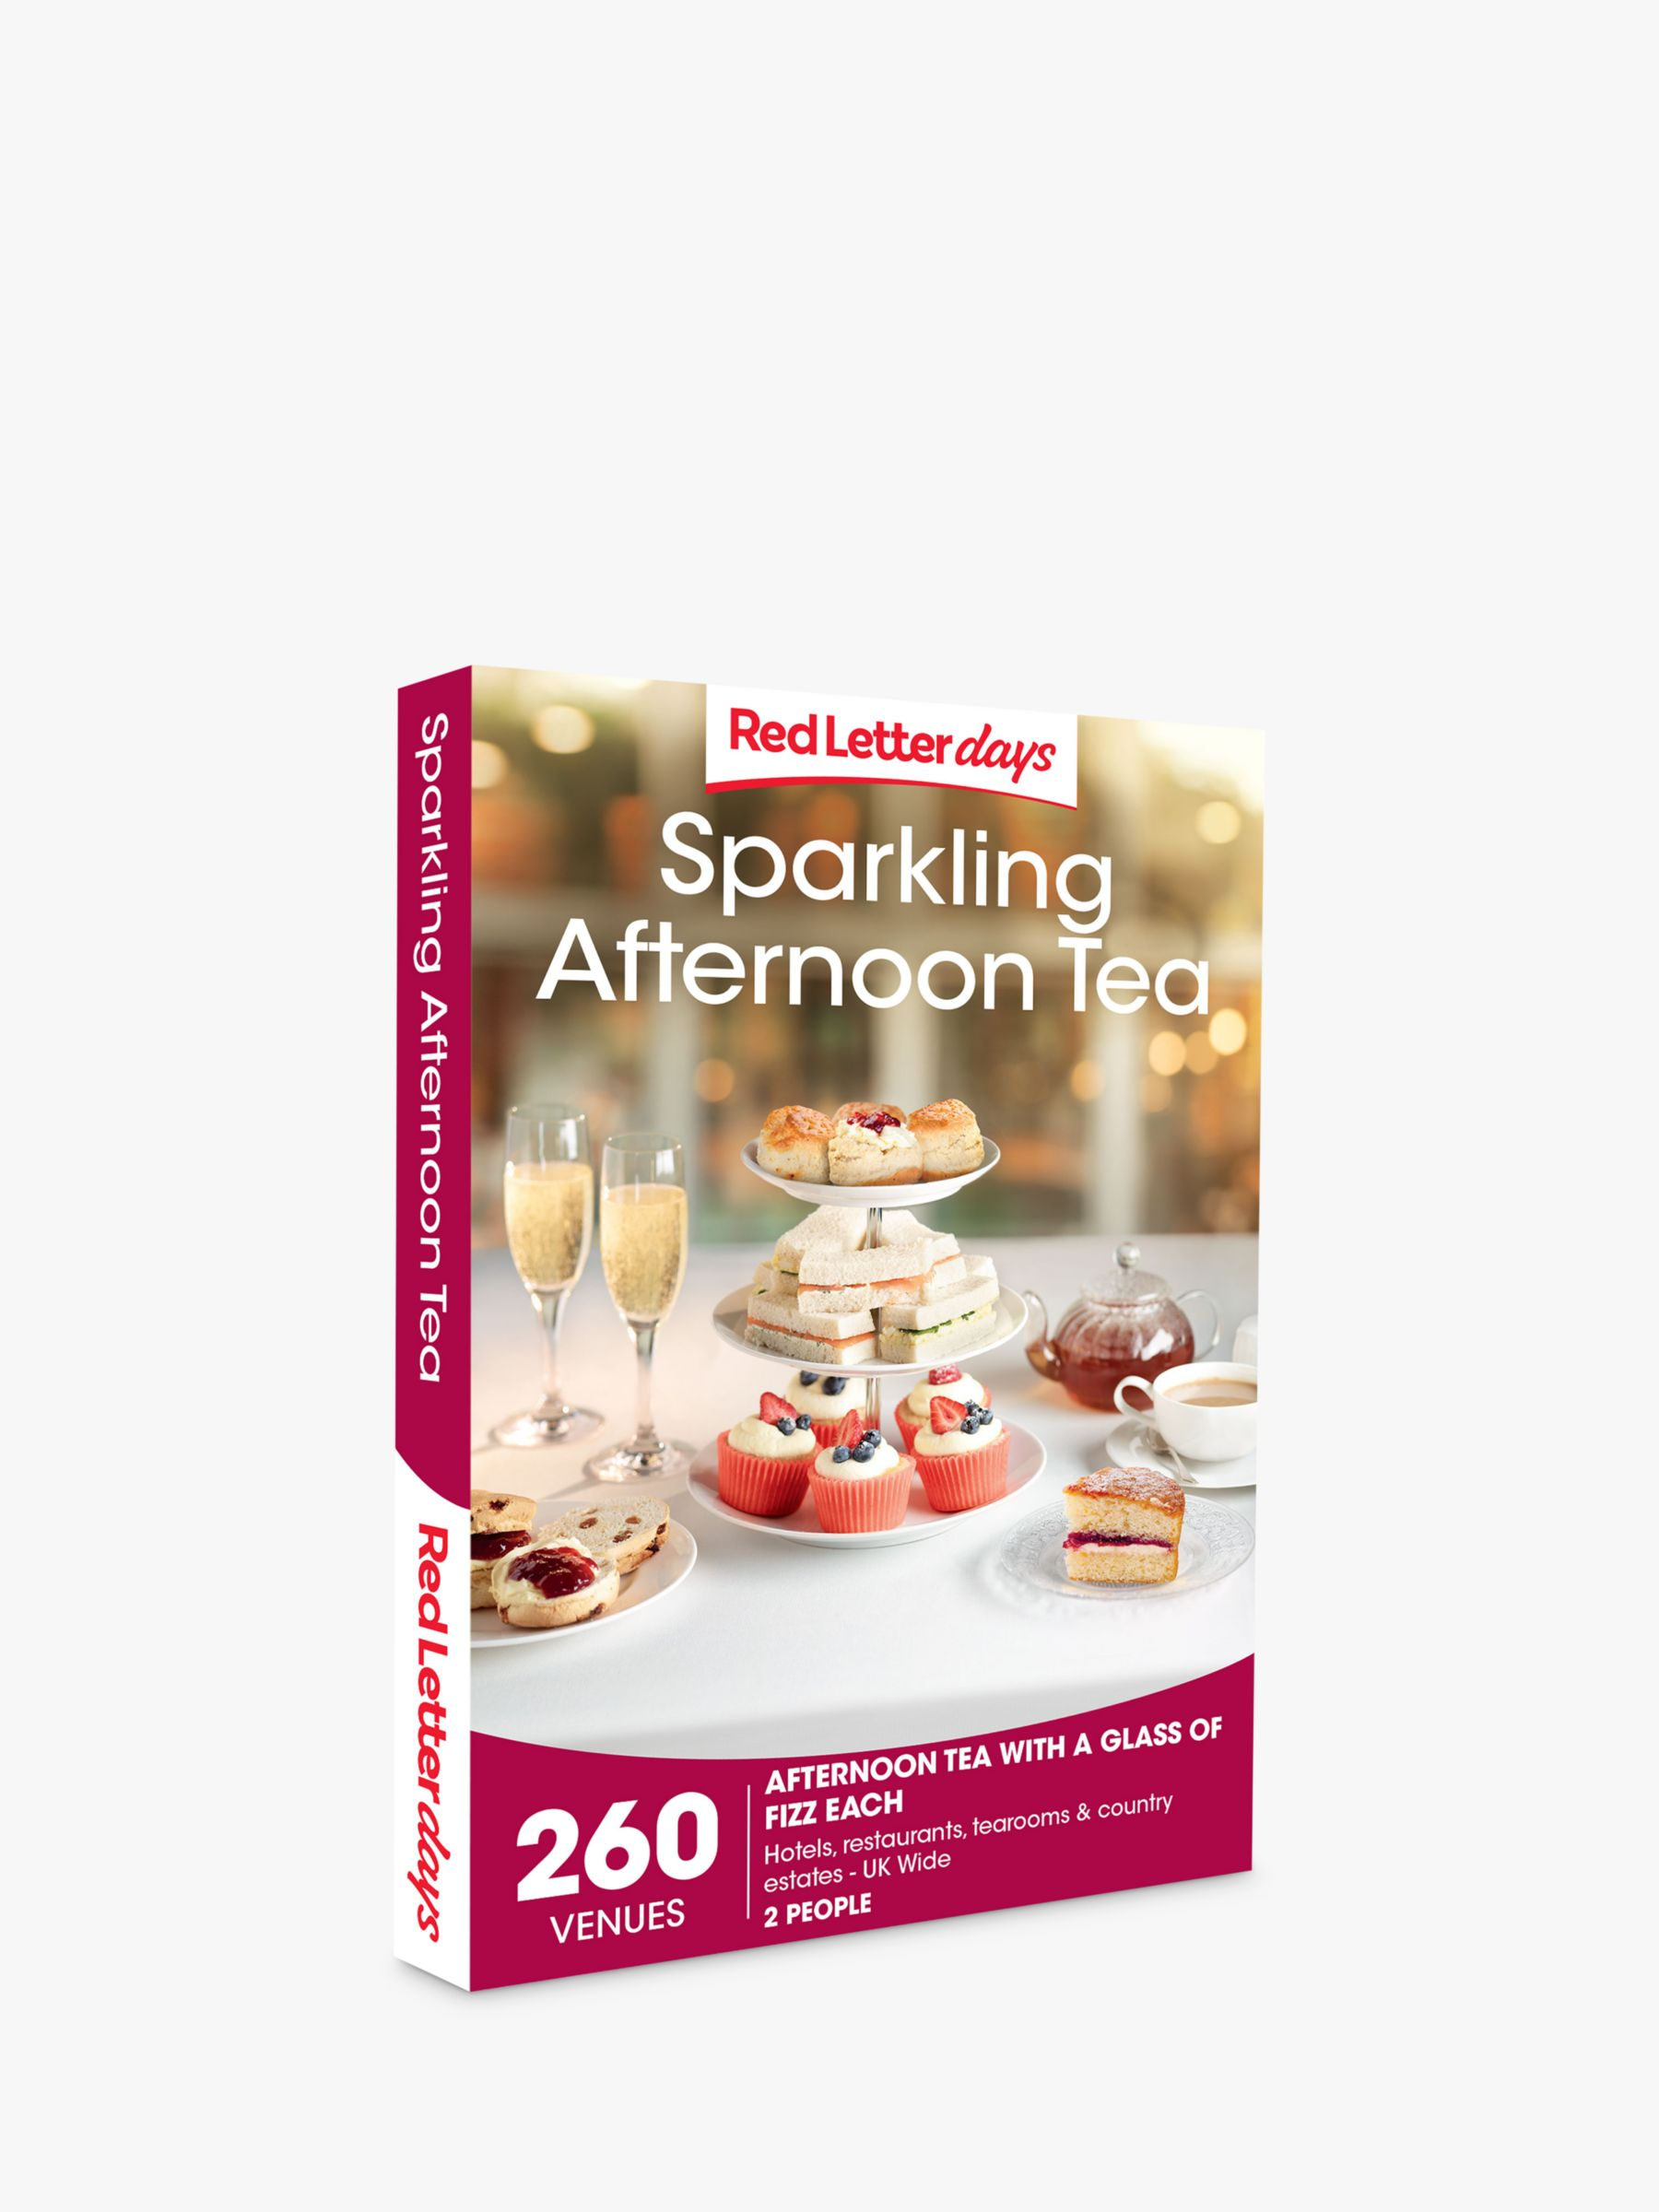 Red Letter Days Red Letter Days Sparkling Afternoon Tea Gift Experience